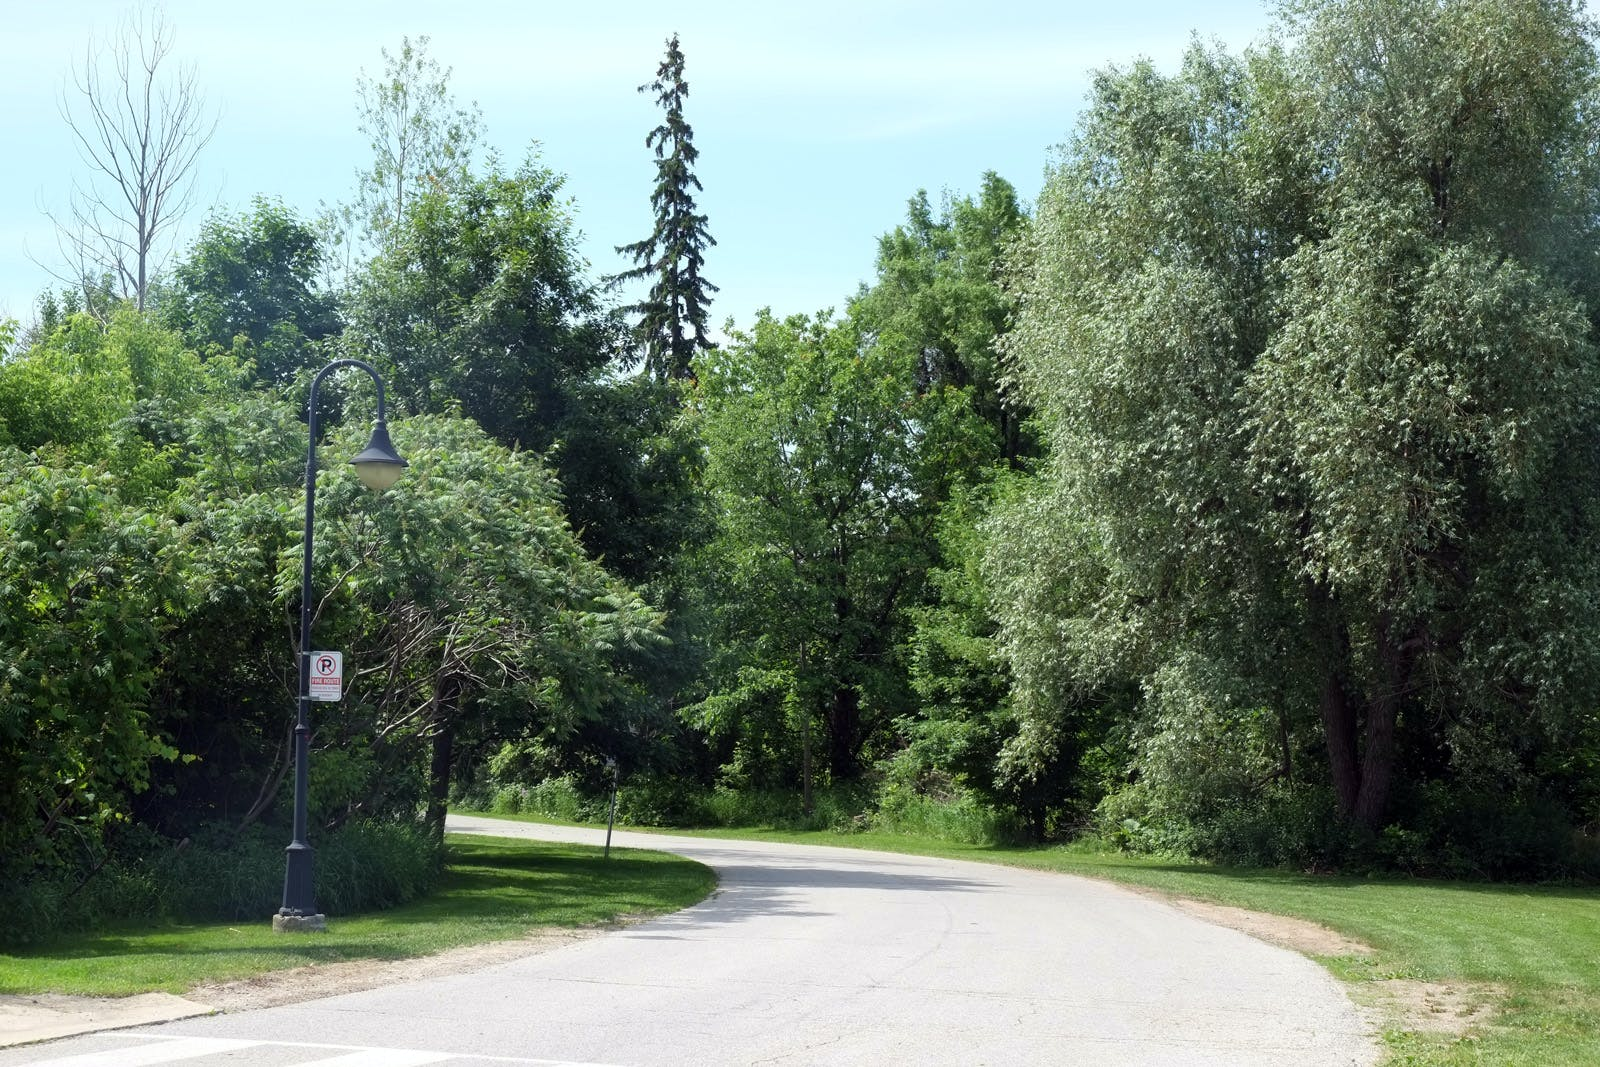 Scenic views along Creditview Road